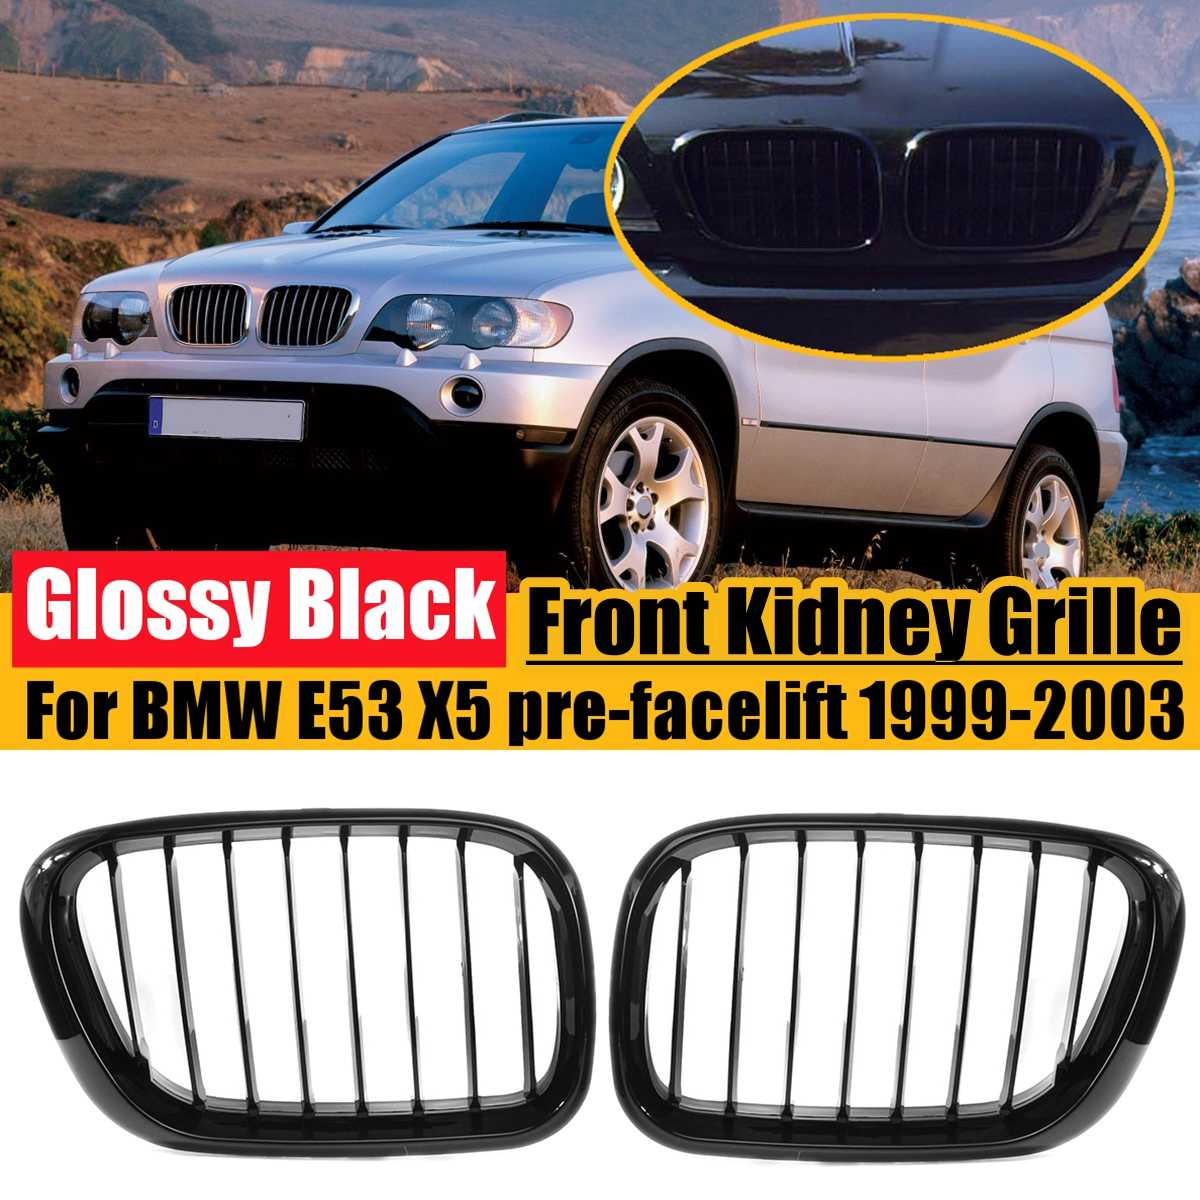 1 Pair Glossy Black Front Kidney Grille For BMW <font><b>E53</b></font> X5 pre-facelift 1999 2000 <font><b>2001</b></font> 2002 2003 Styling Racing Grille #51138250052 image